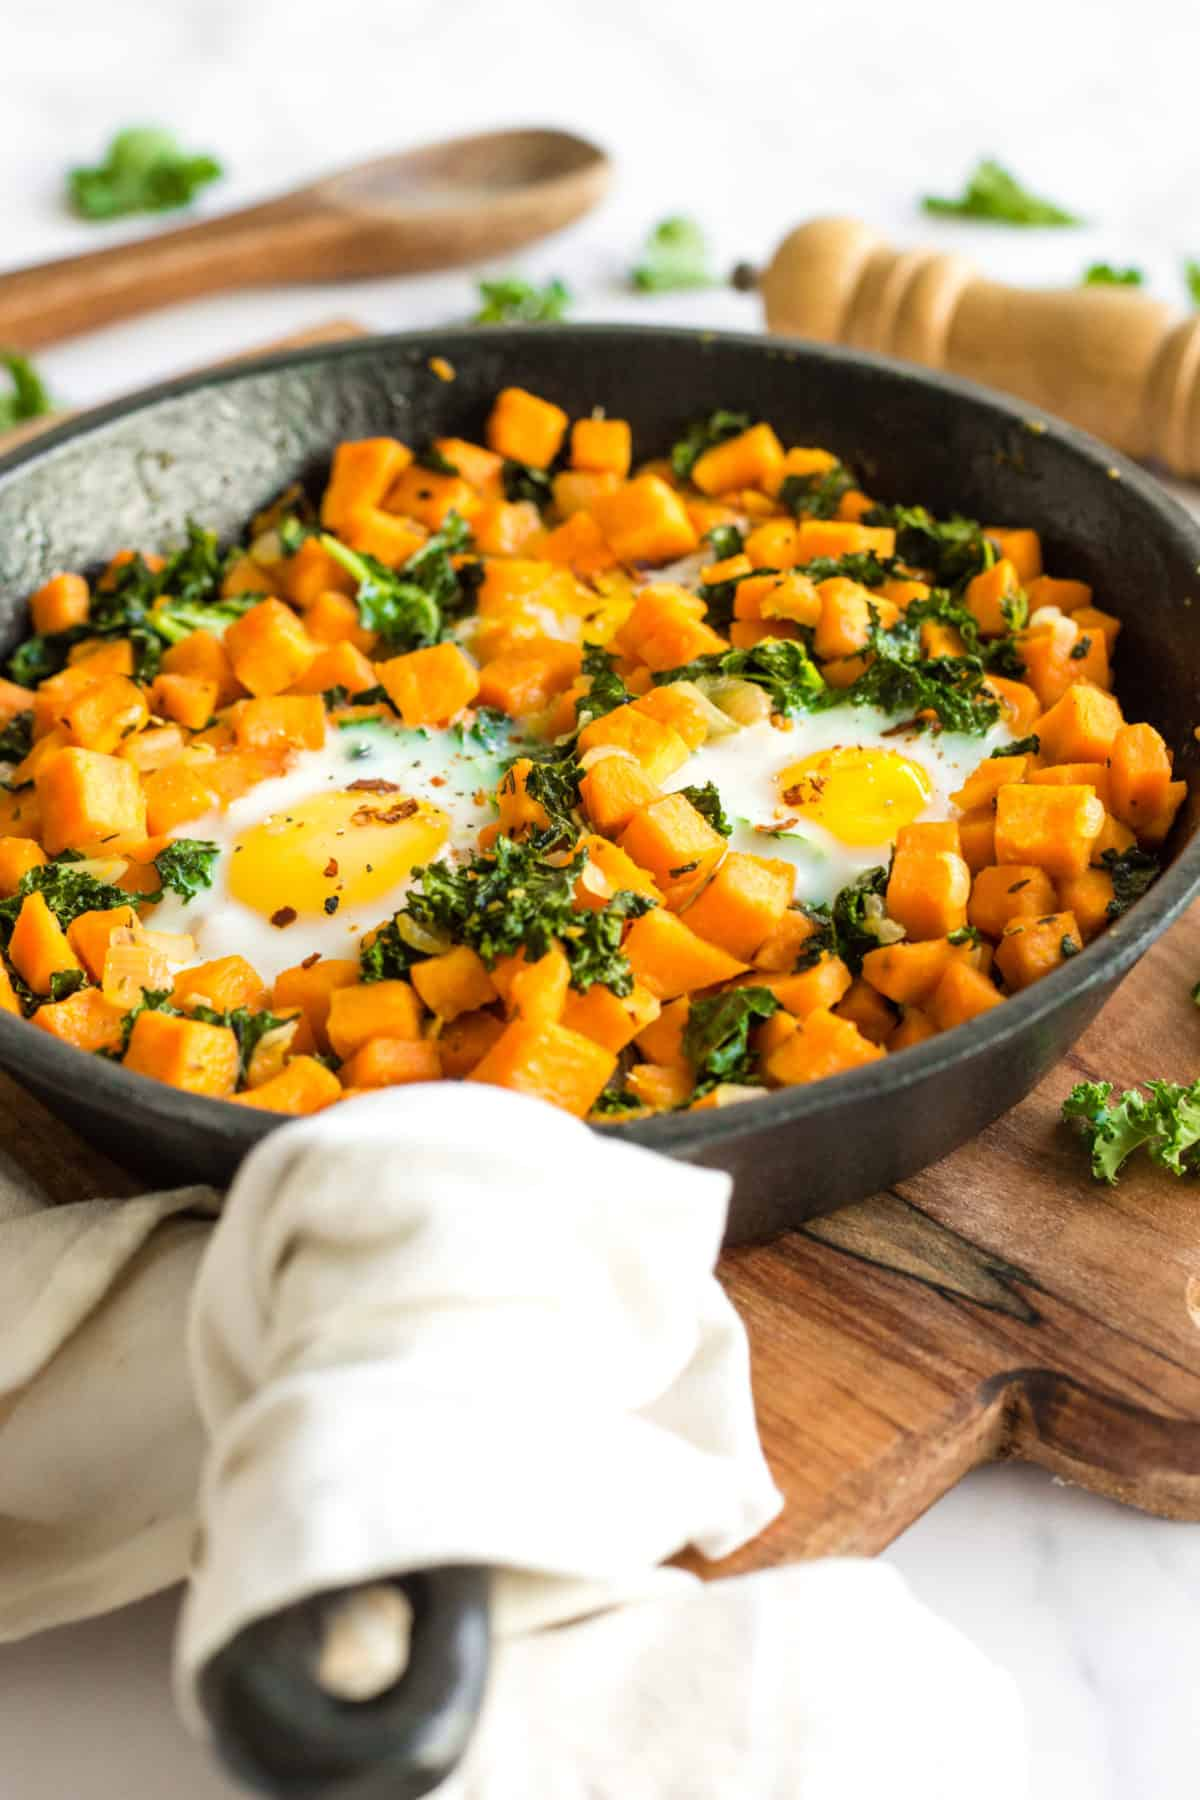 Sautéed sweet potato cubes and kale with eggs in a cast iron skillet.